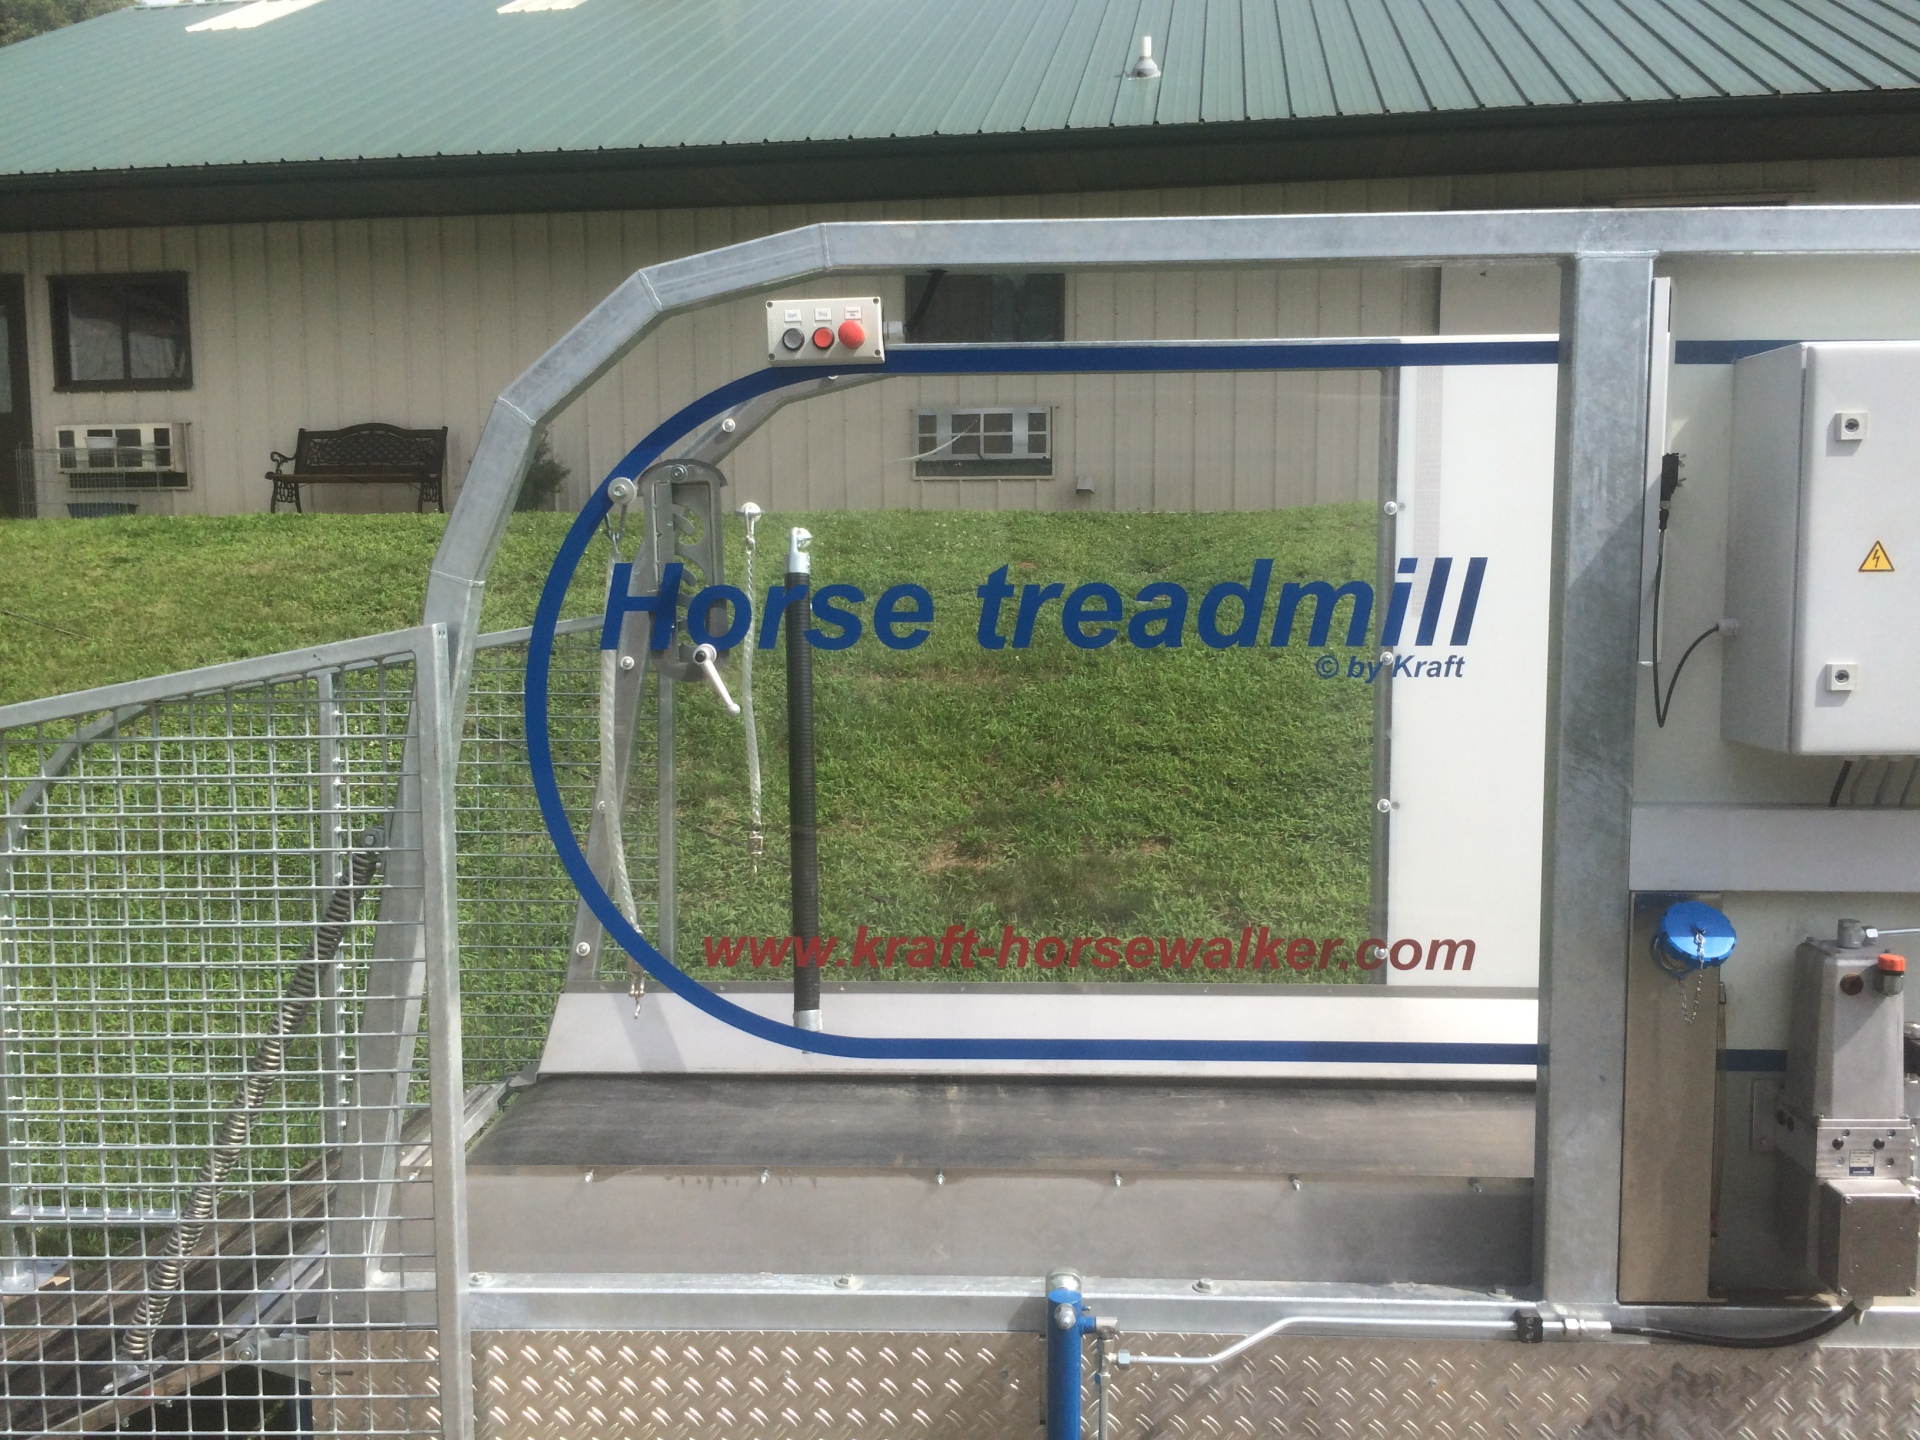 horse treadmill with clear sides at Patchwork Farm, GA